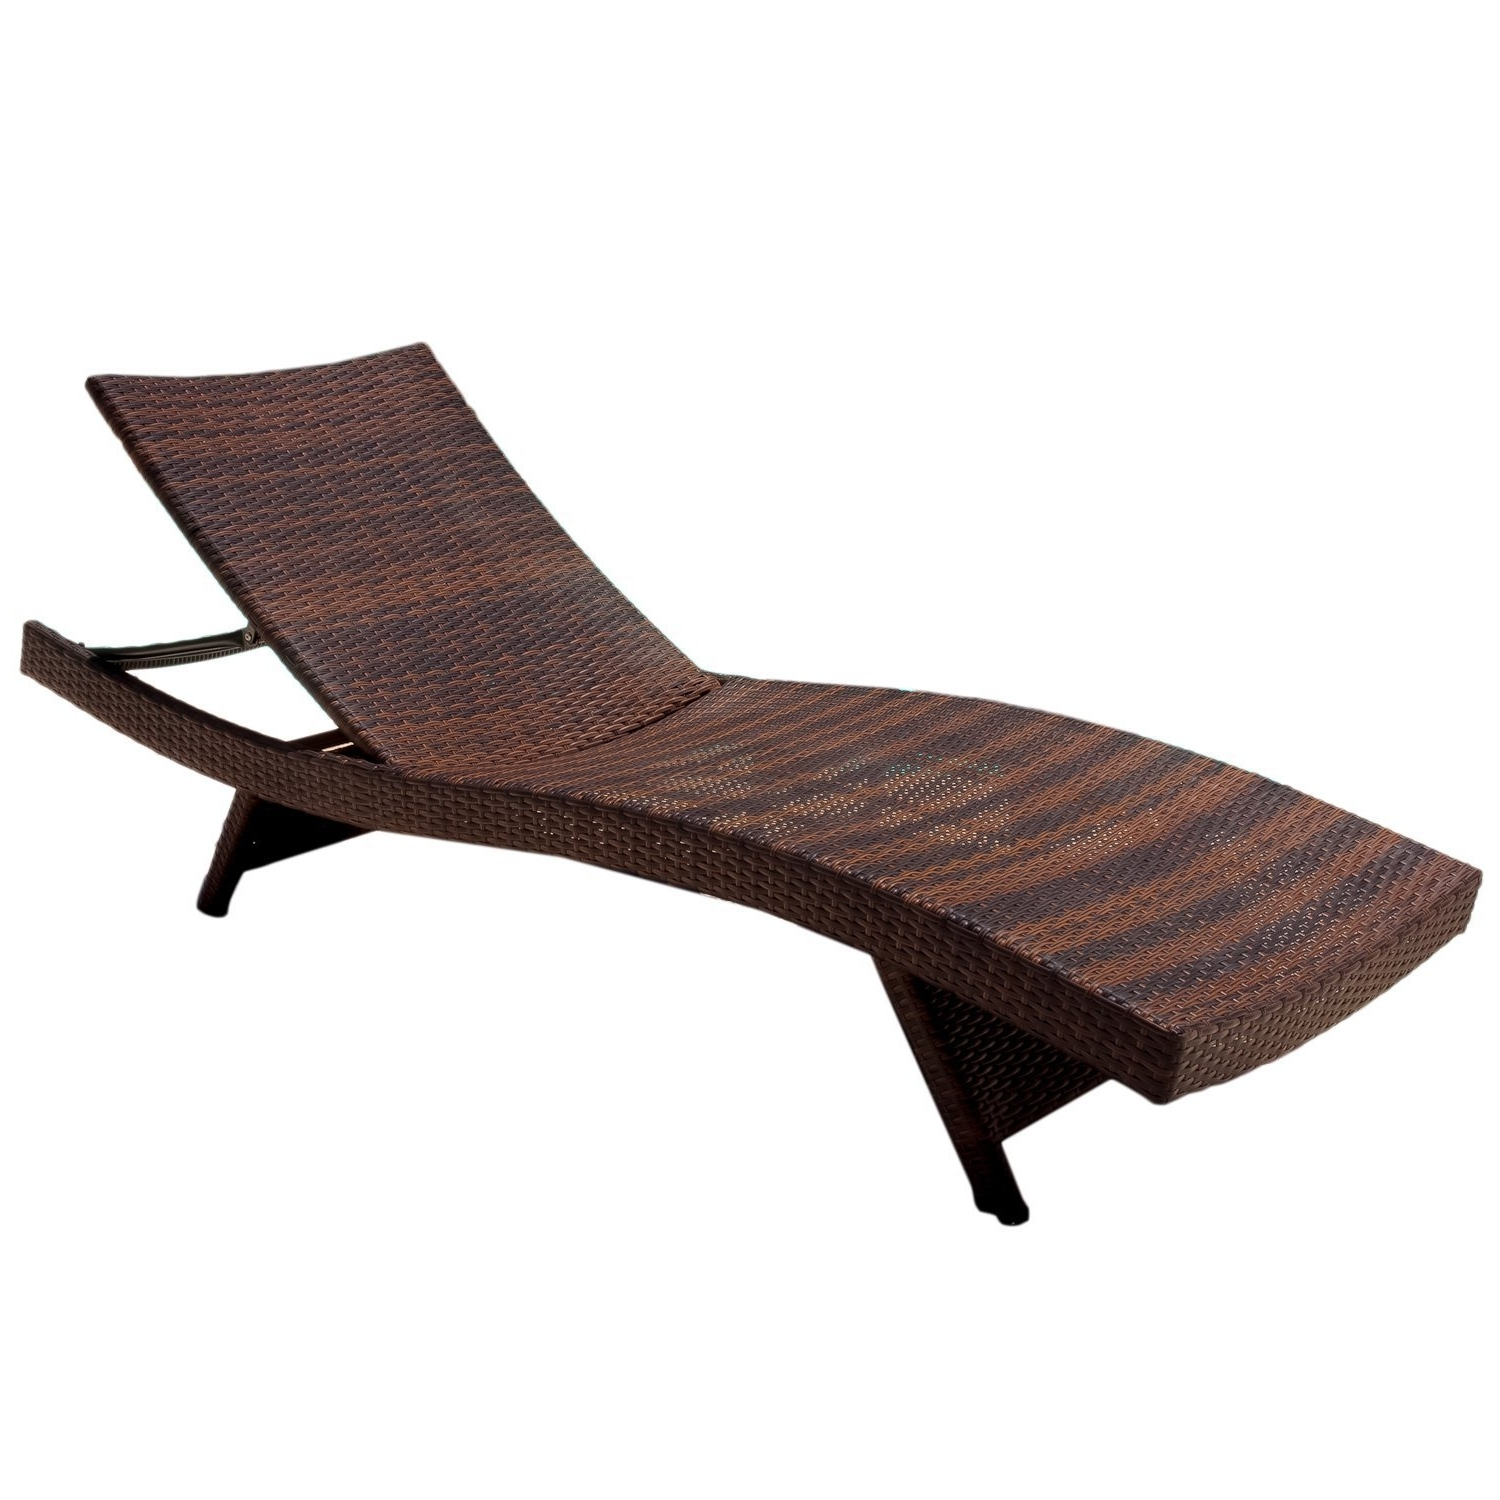 Amazon : Best Selling Outdoor Adjustable Wicker Lounge, Brown Throughout Trendy Wicker Chaise Lounge Chairs For Outdoor (View 14 of 15)